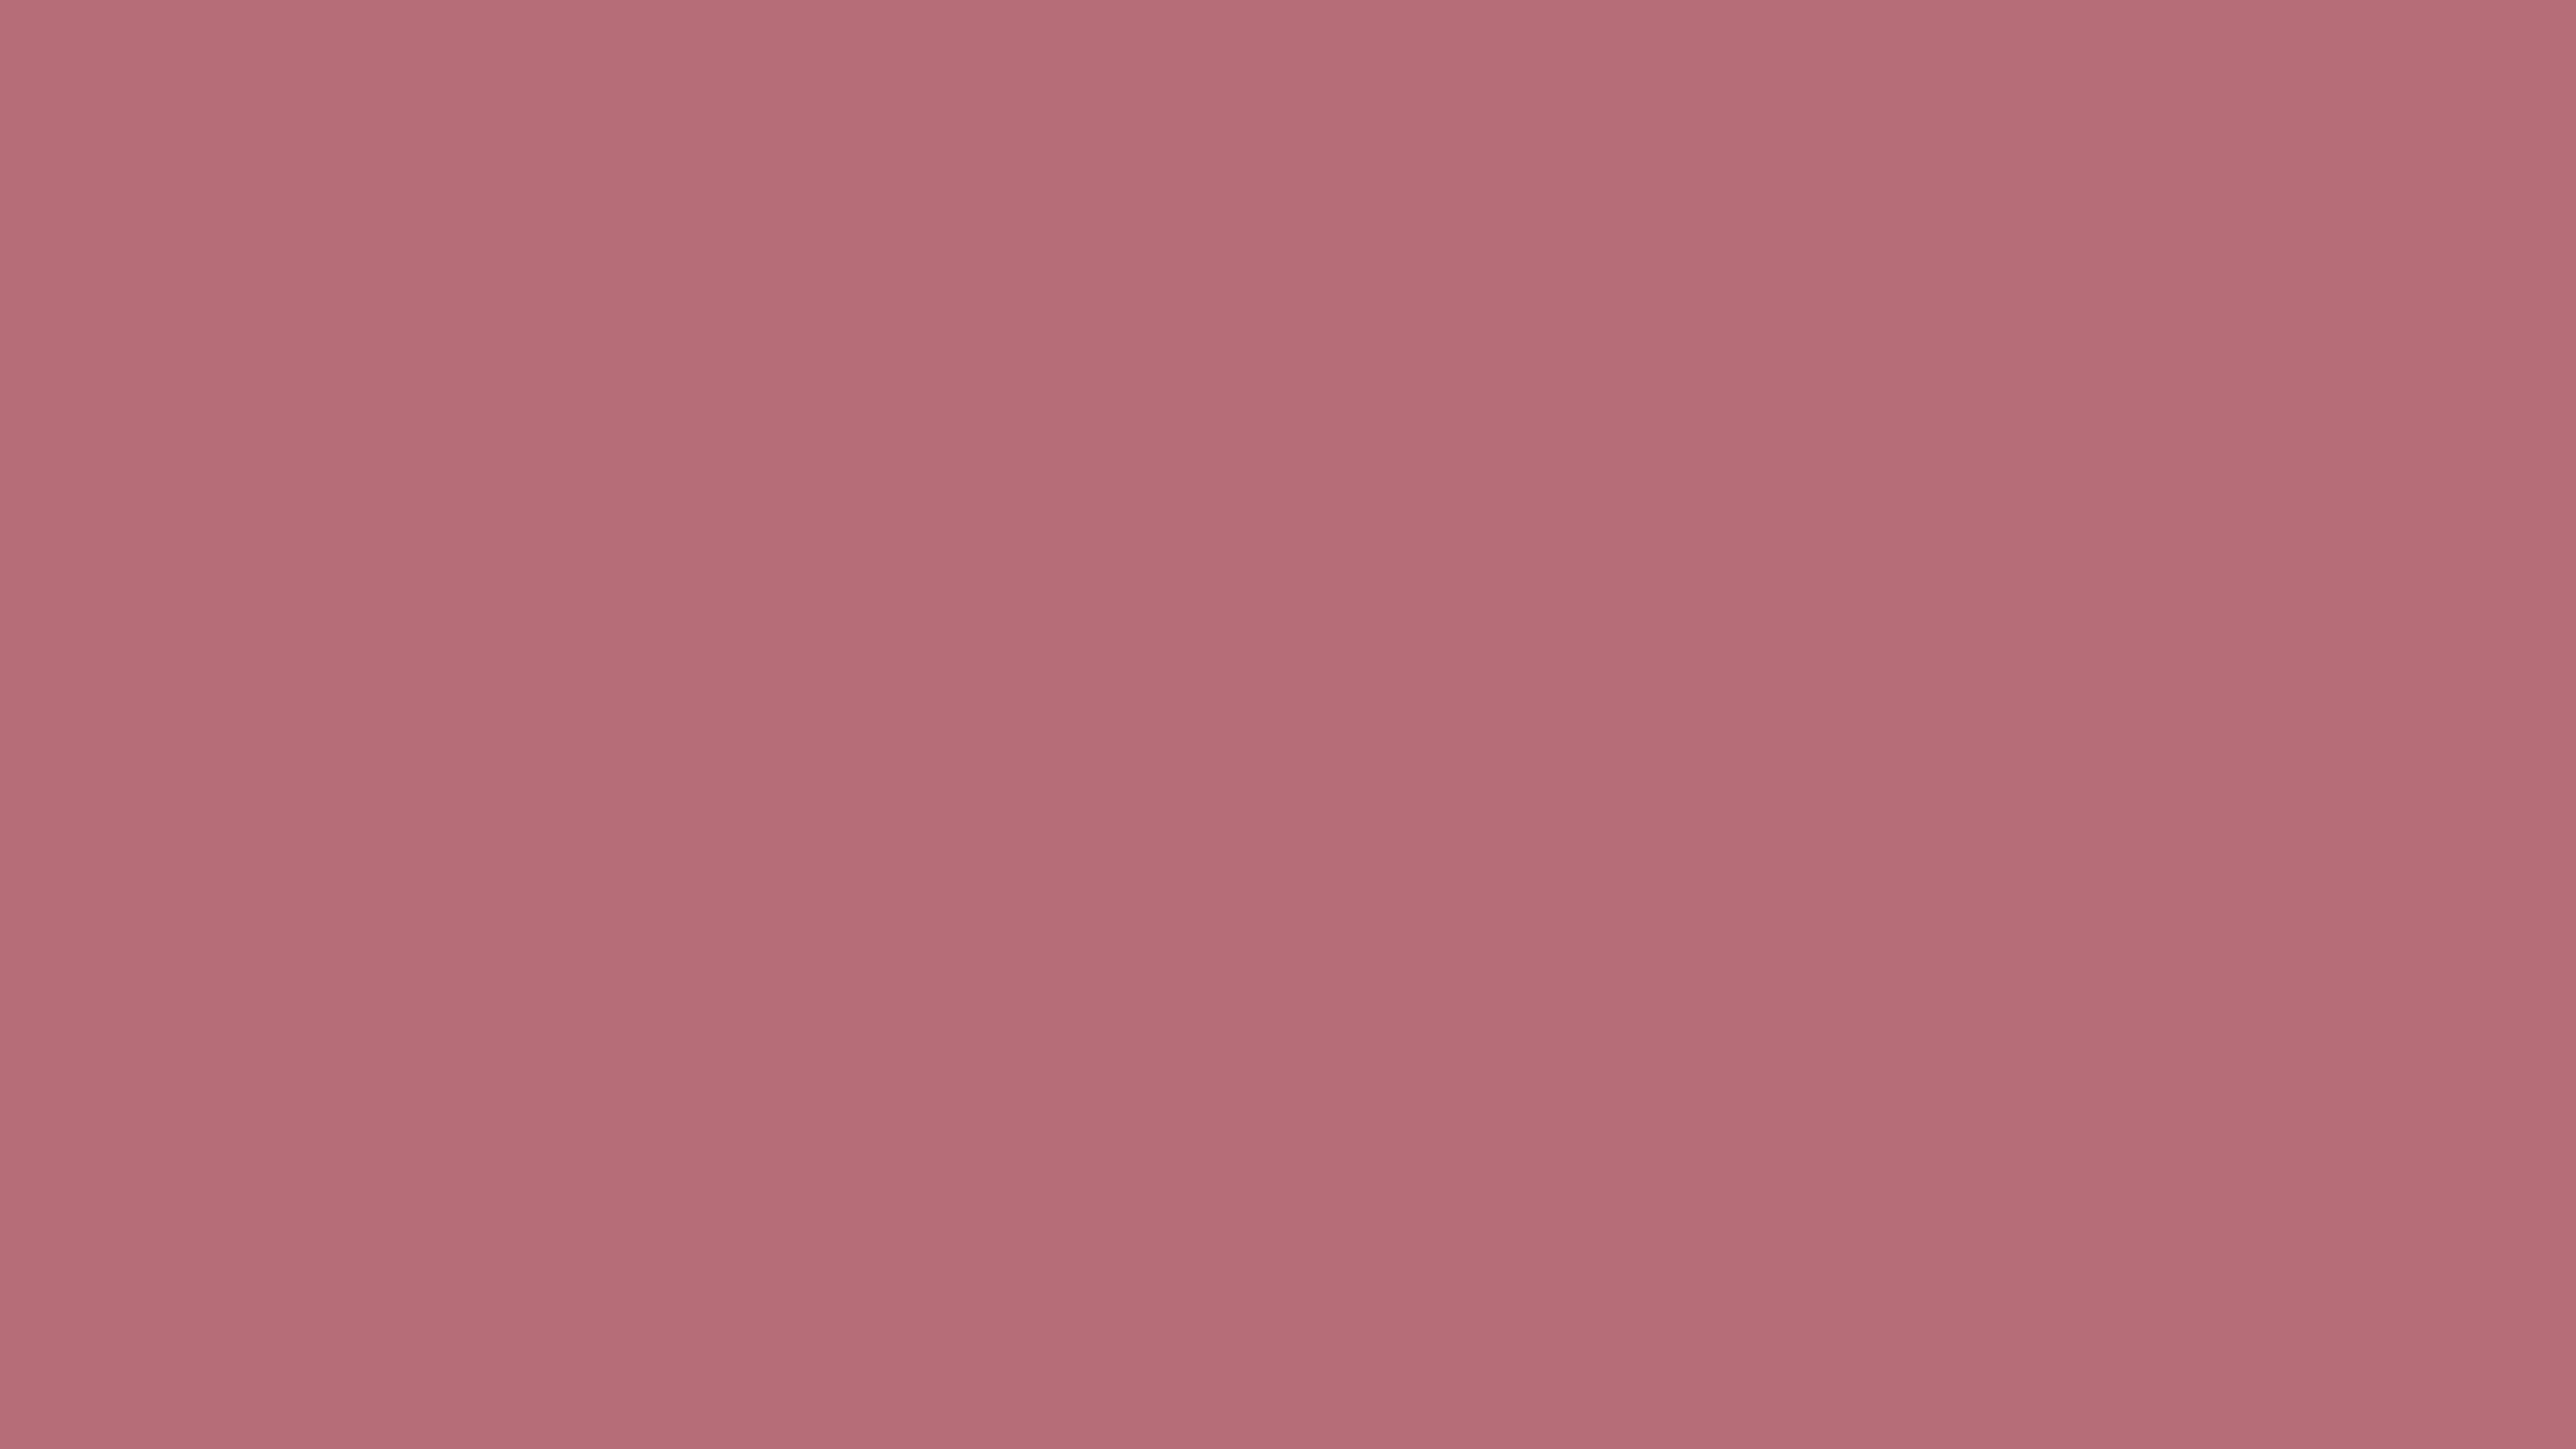 4096x2304 Rose Gold Solid Color Background